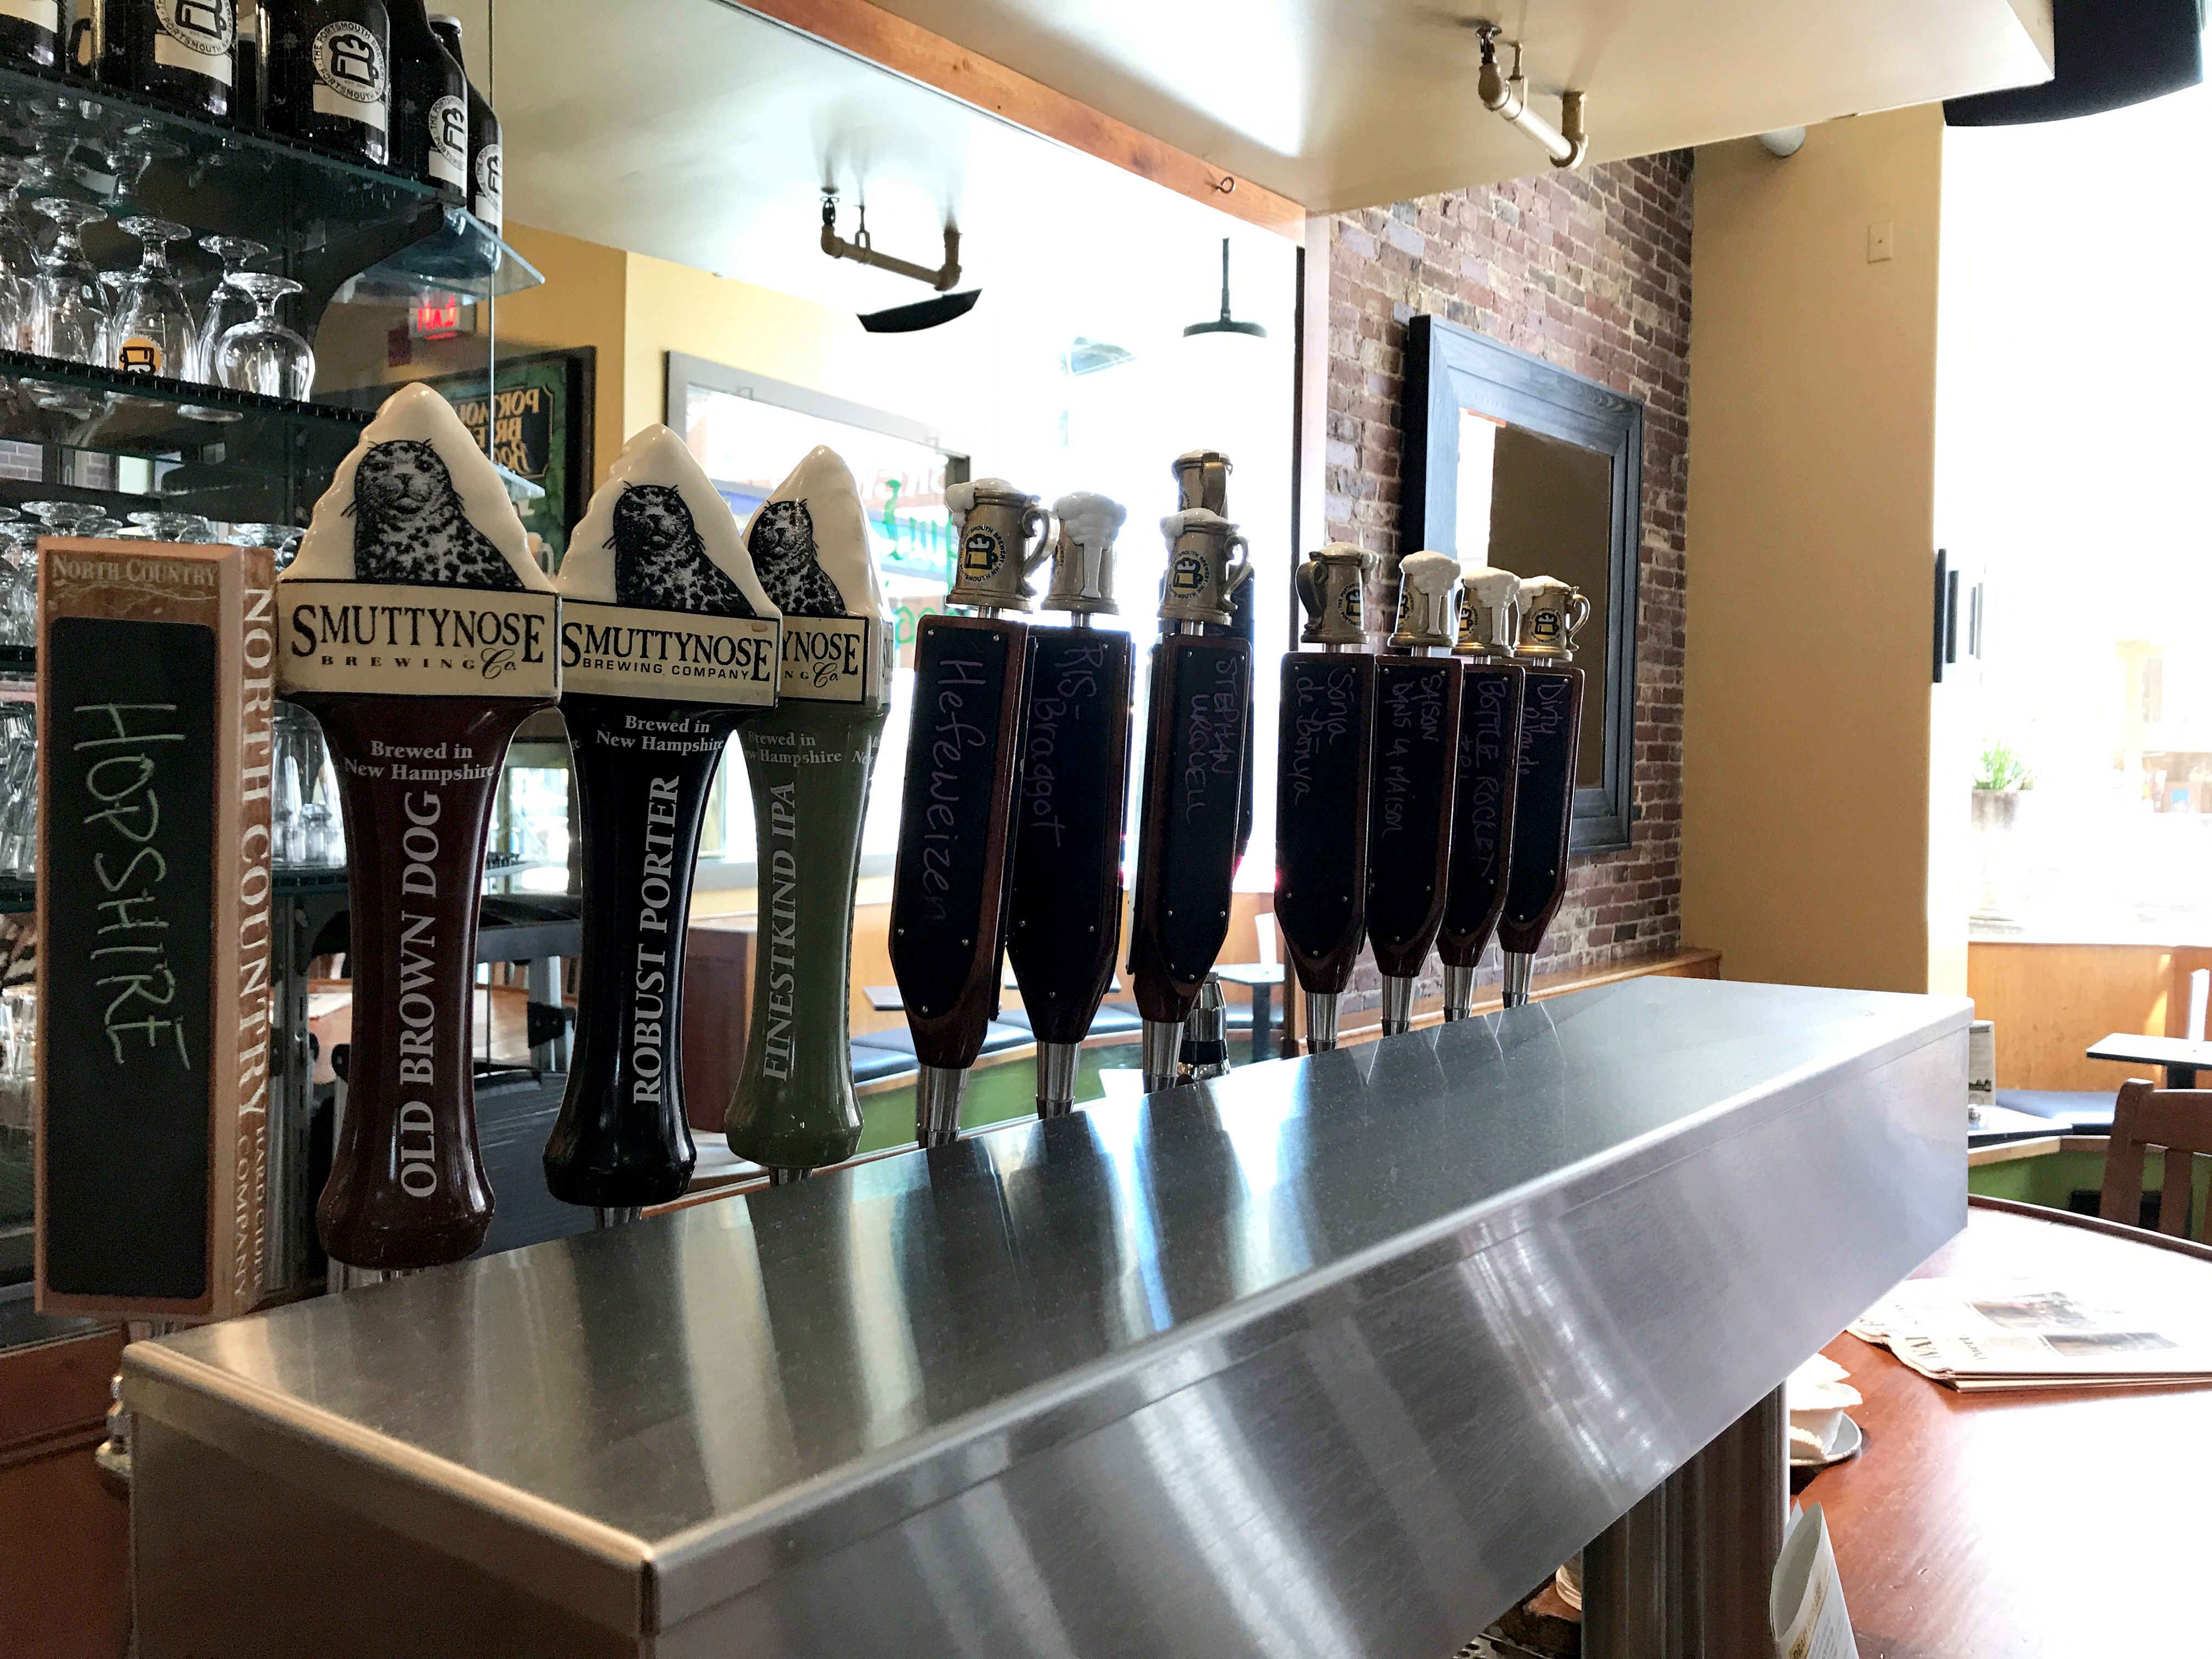 Portsmouth Brewery Alex Wilking For Eater